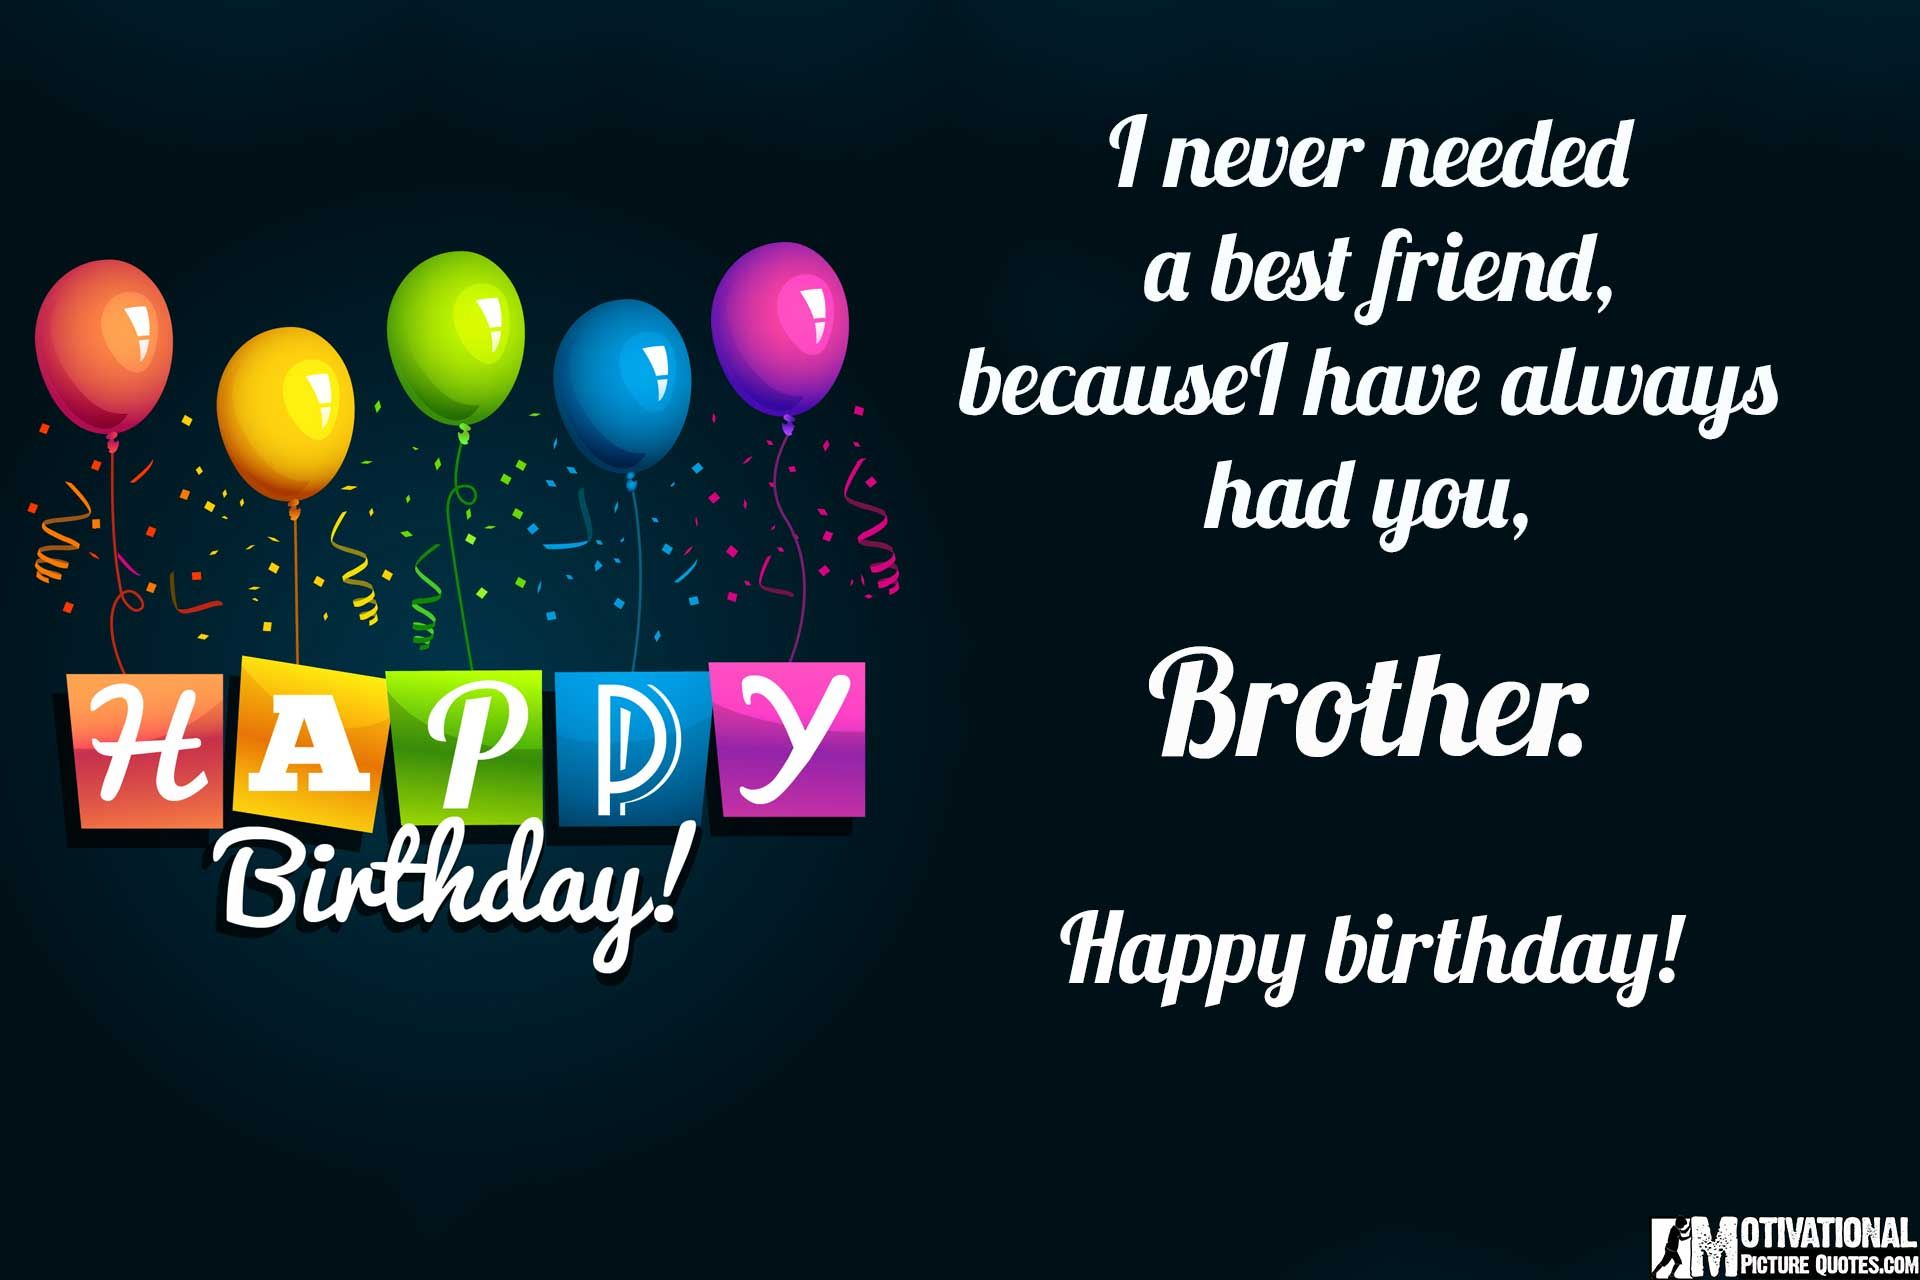 Birthday Quotation For Brother Tumblr thumbnail